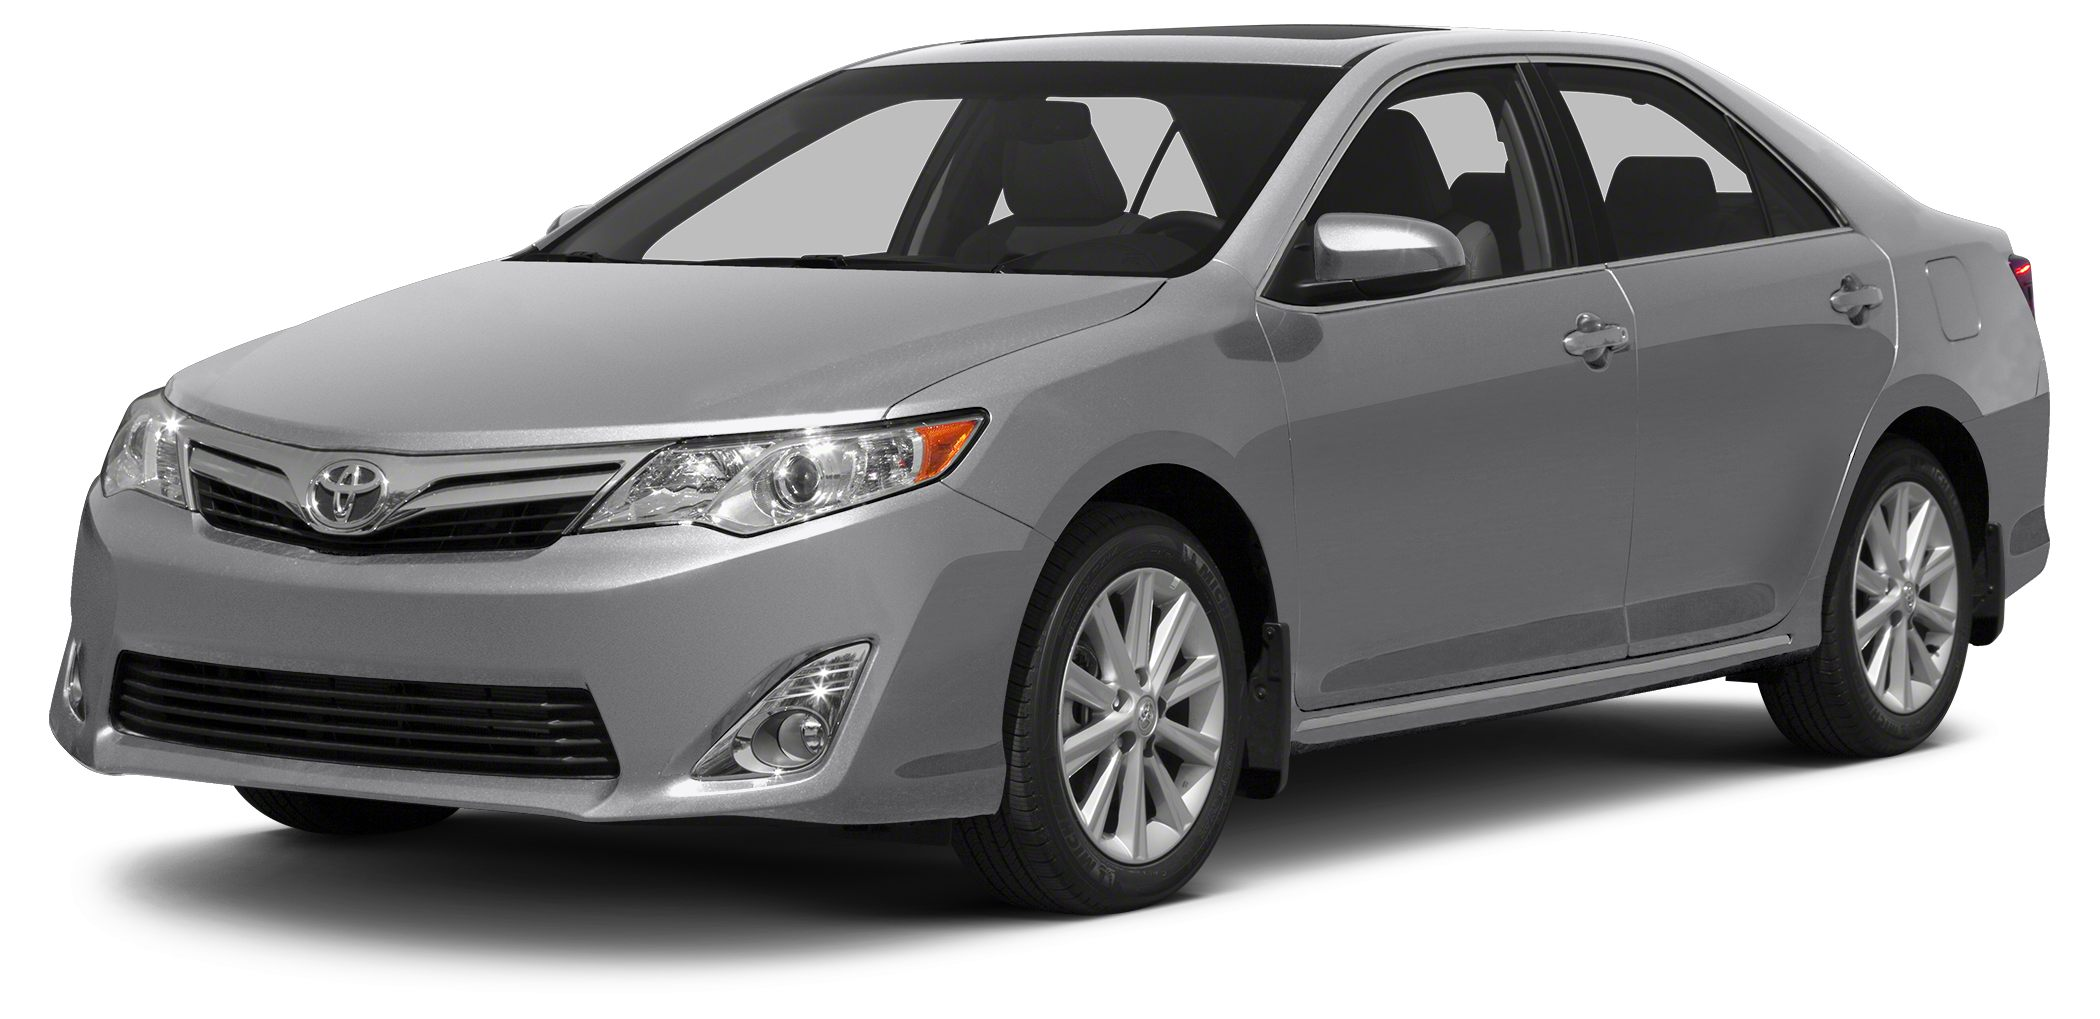 2012 Toyota Camry LE EPA 35 MPG Hwy25 MPG City CARFAX 1-Owner ONLY 21790 Miles LE trim Sunro